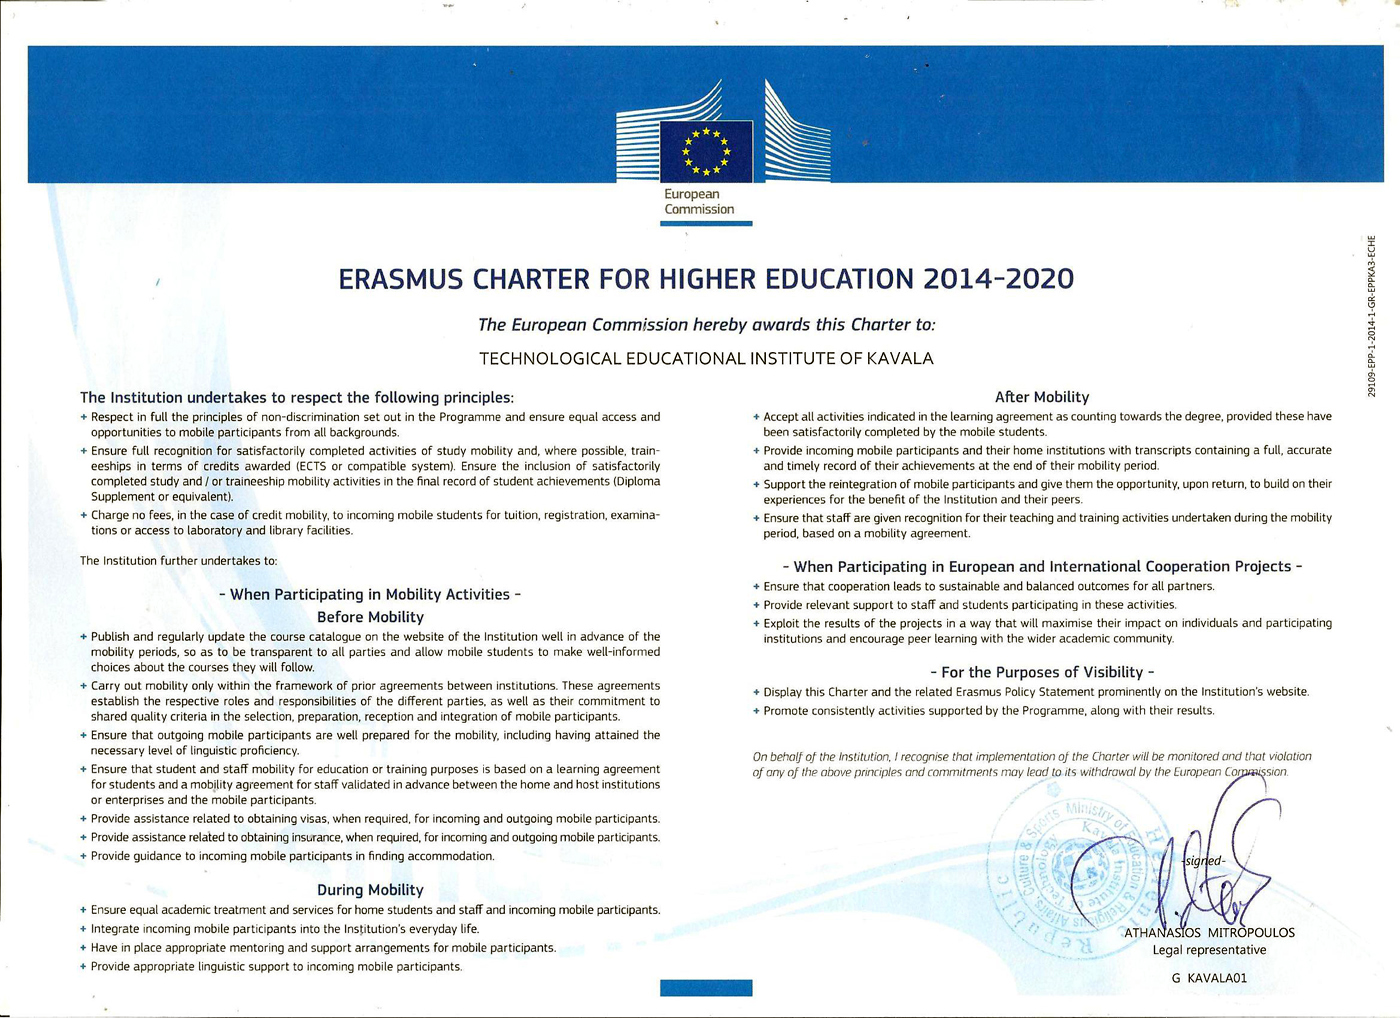 Erasums charter for Higher Education 2014 - 2020